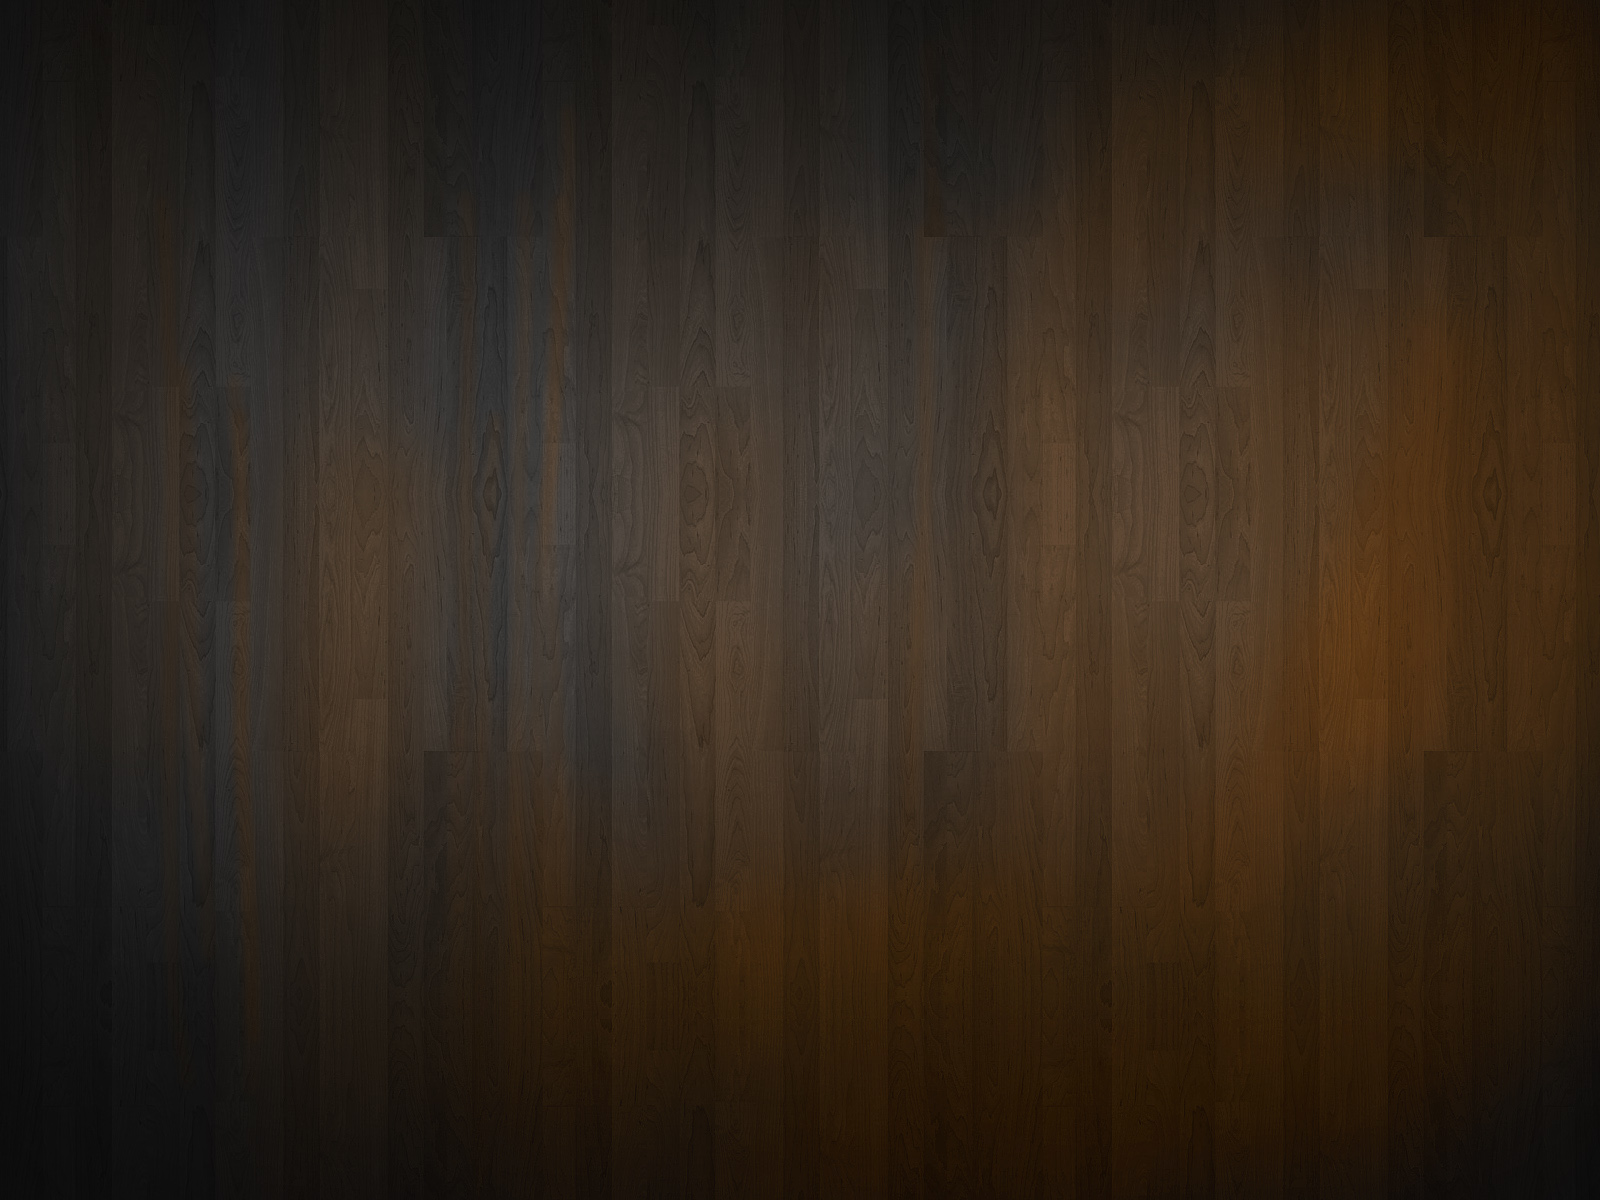 Wooden Textures for Designers (12)